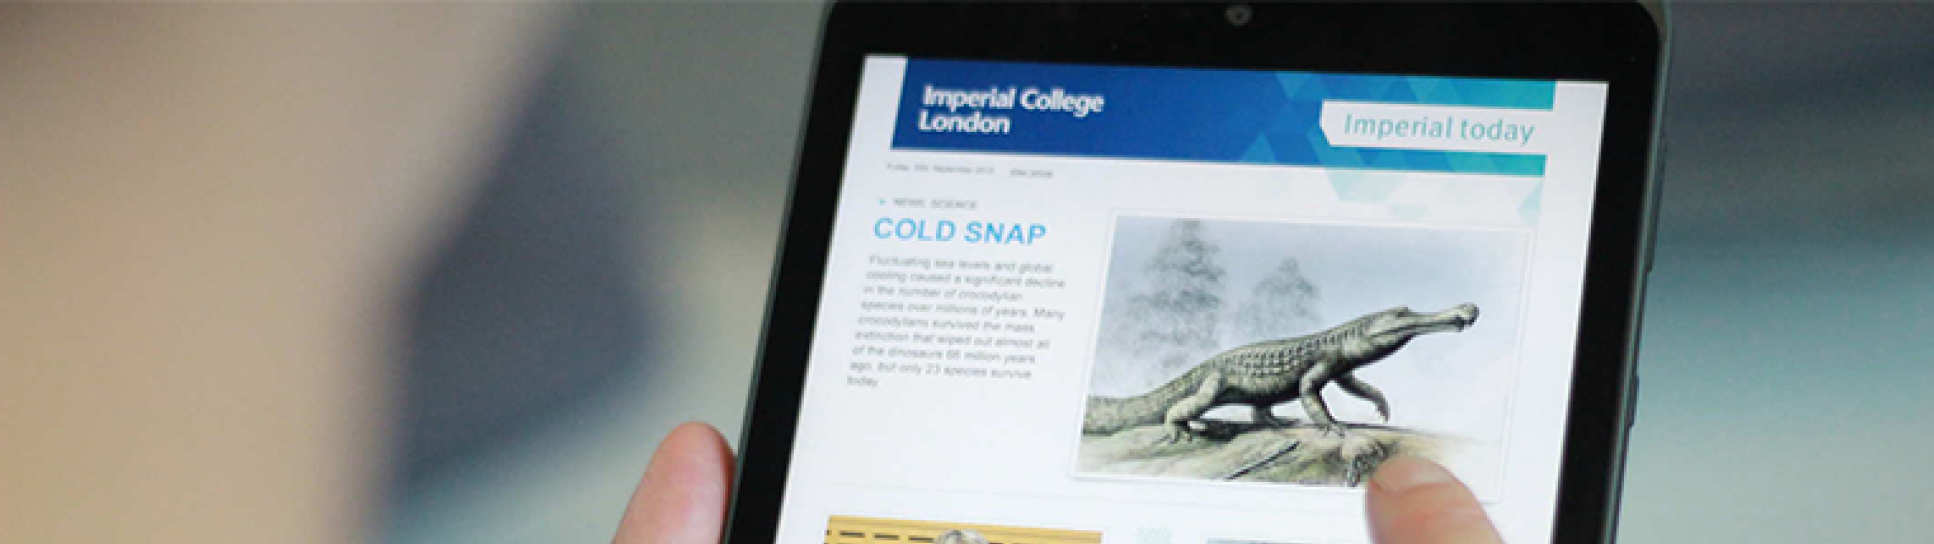 Imperial Today enewsletter on an ipad